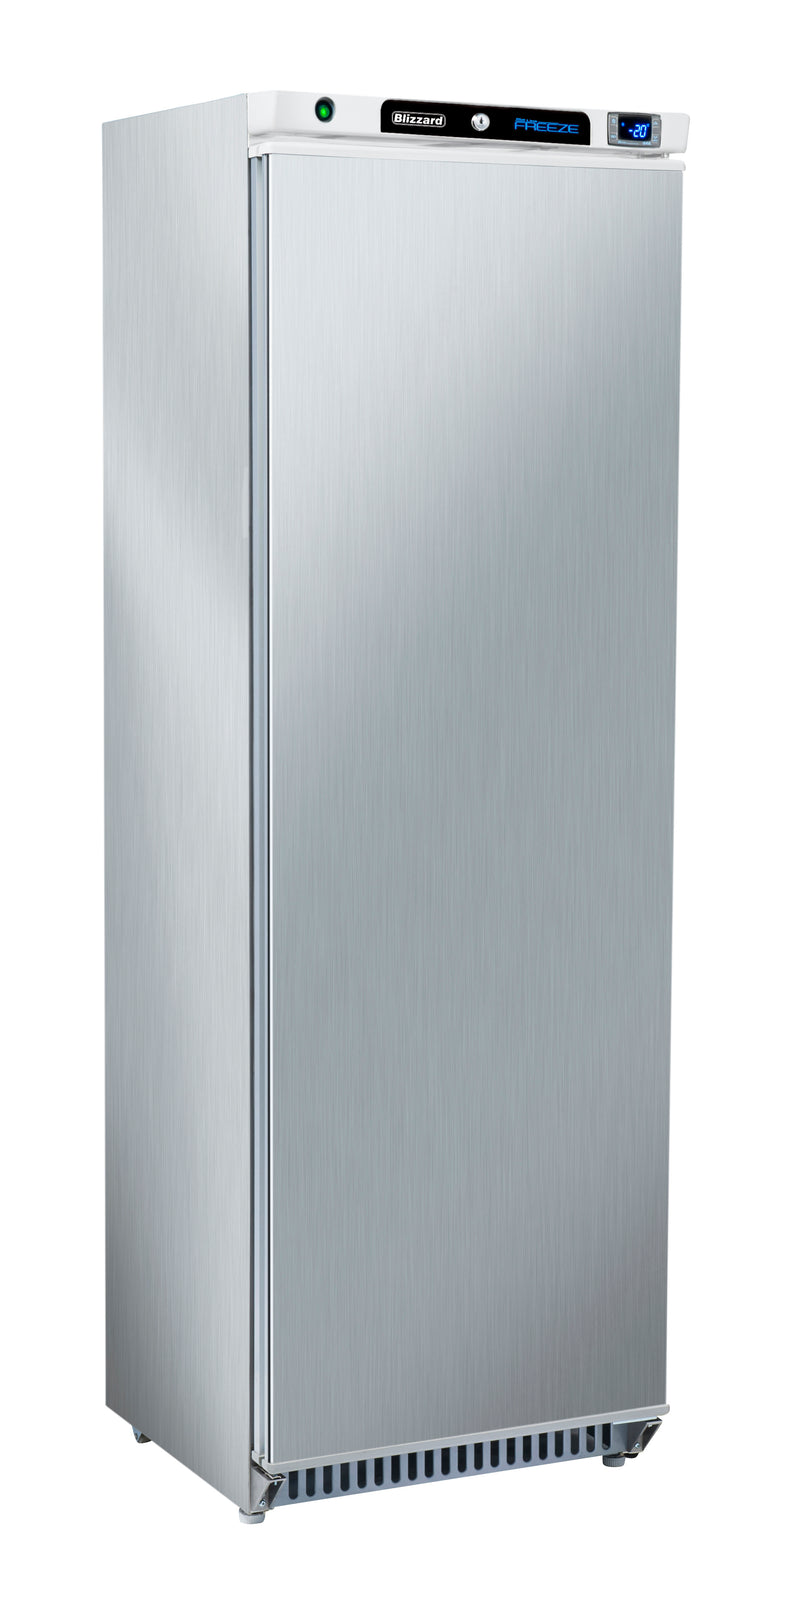 Blizzard Upright Freezer - 380 Litre Stainless Steel,Solid Door Freezer,Blizzard